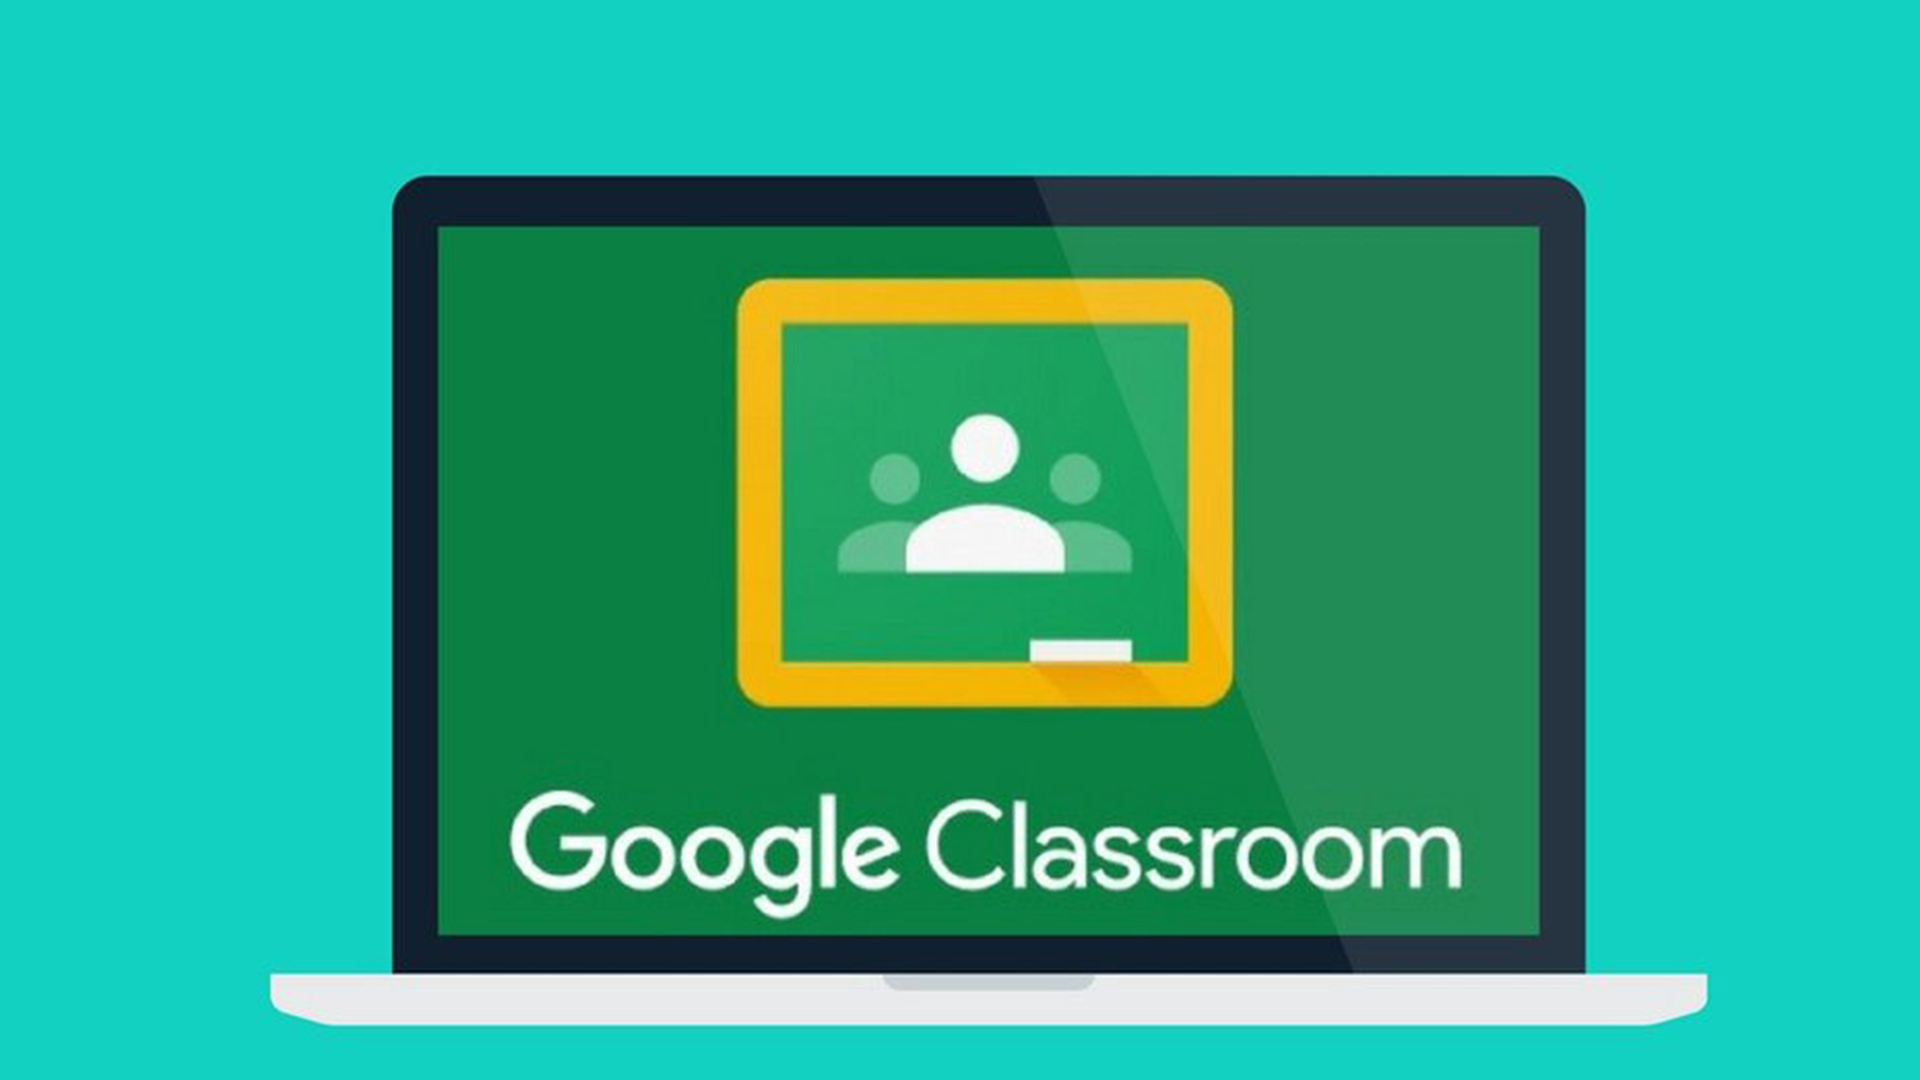 Download Google Classroom on PC PC